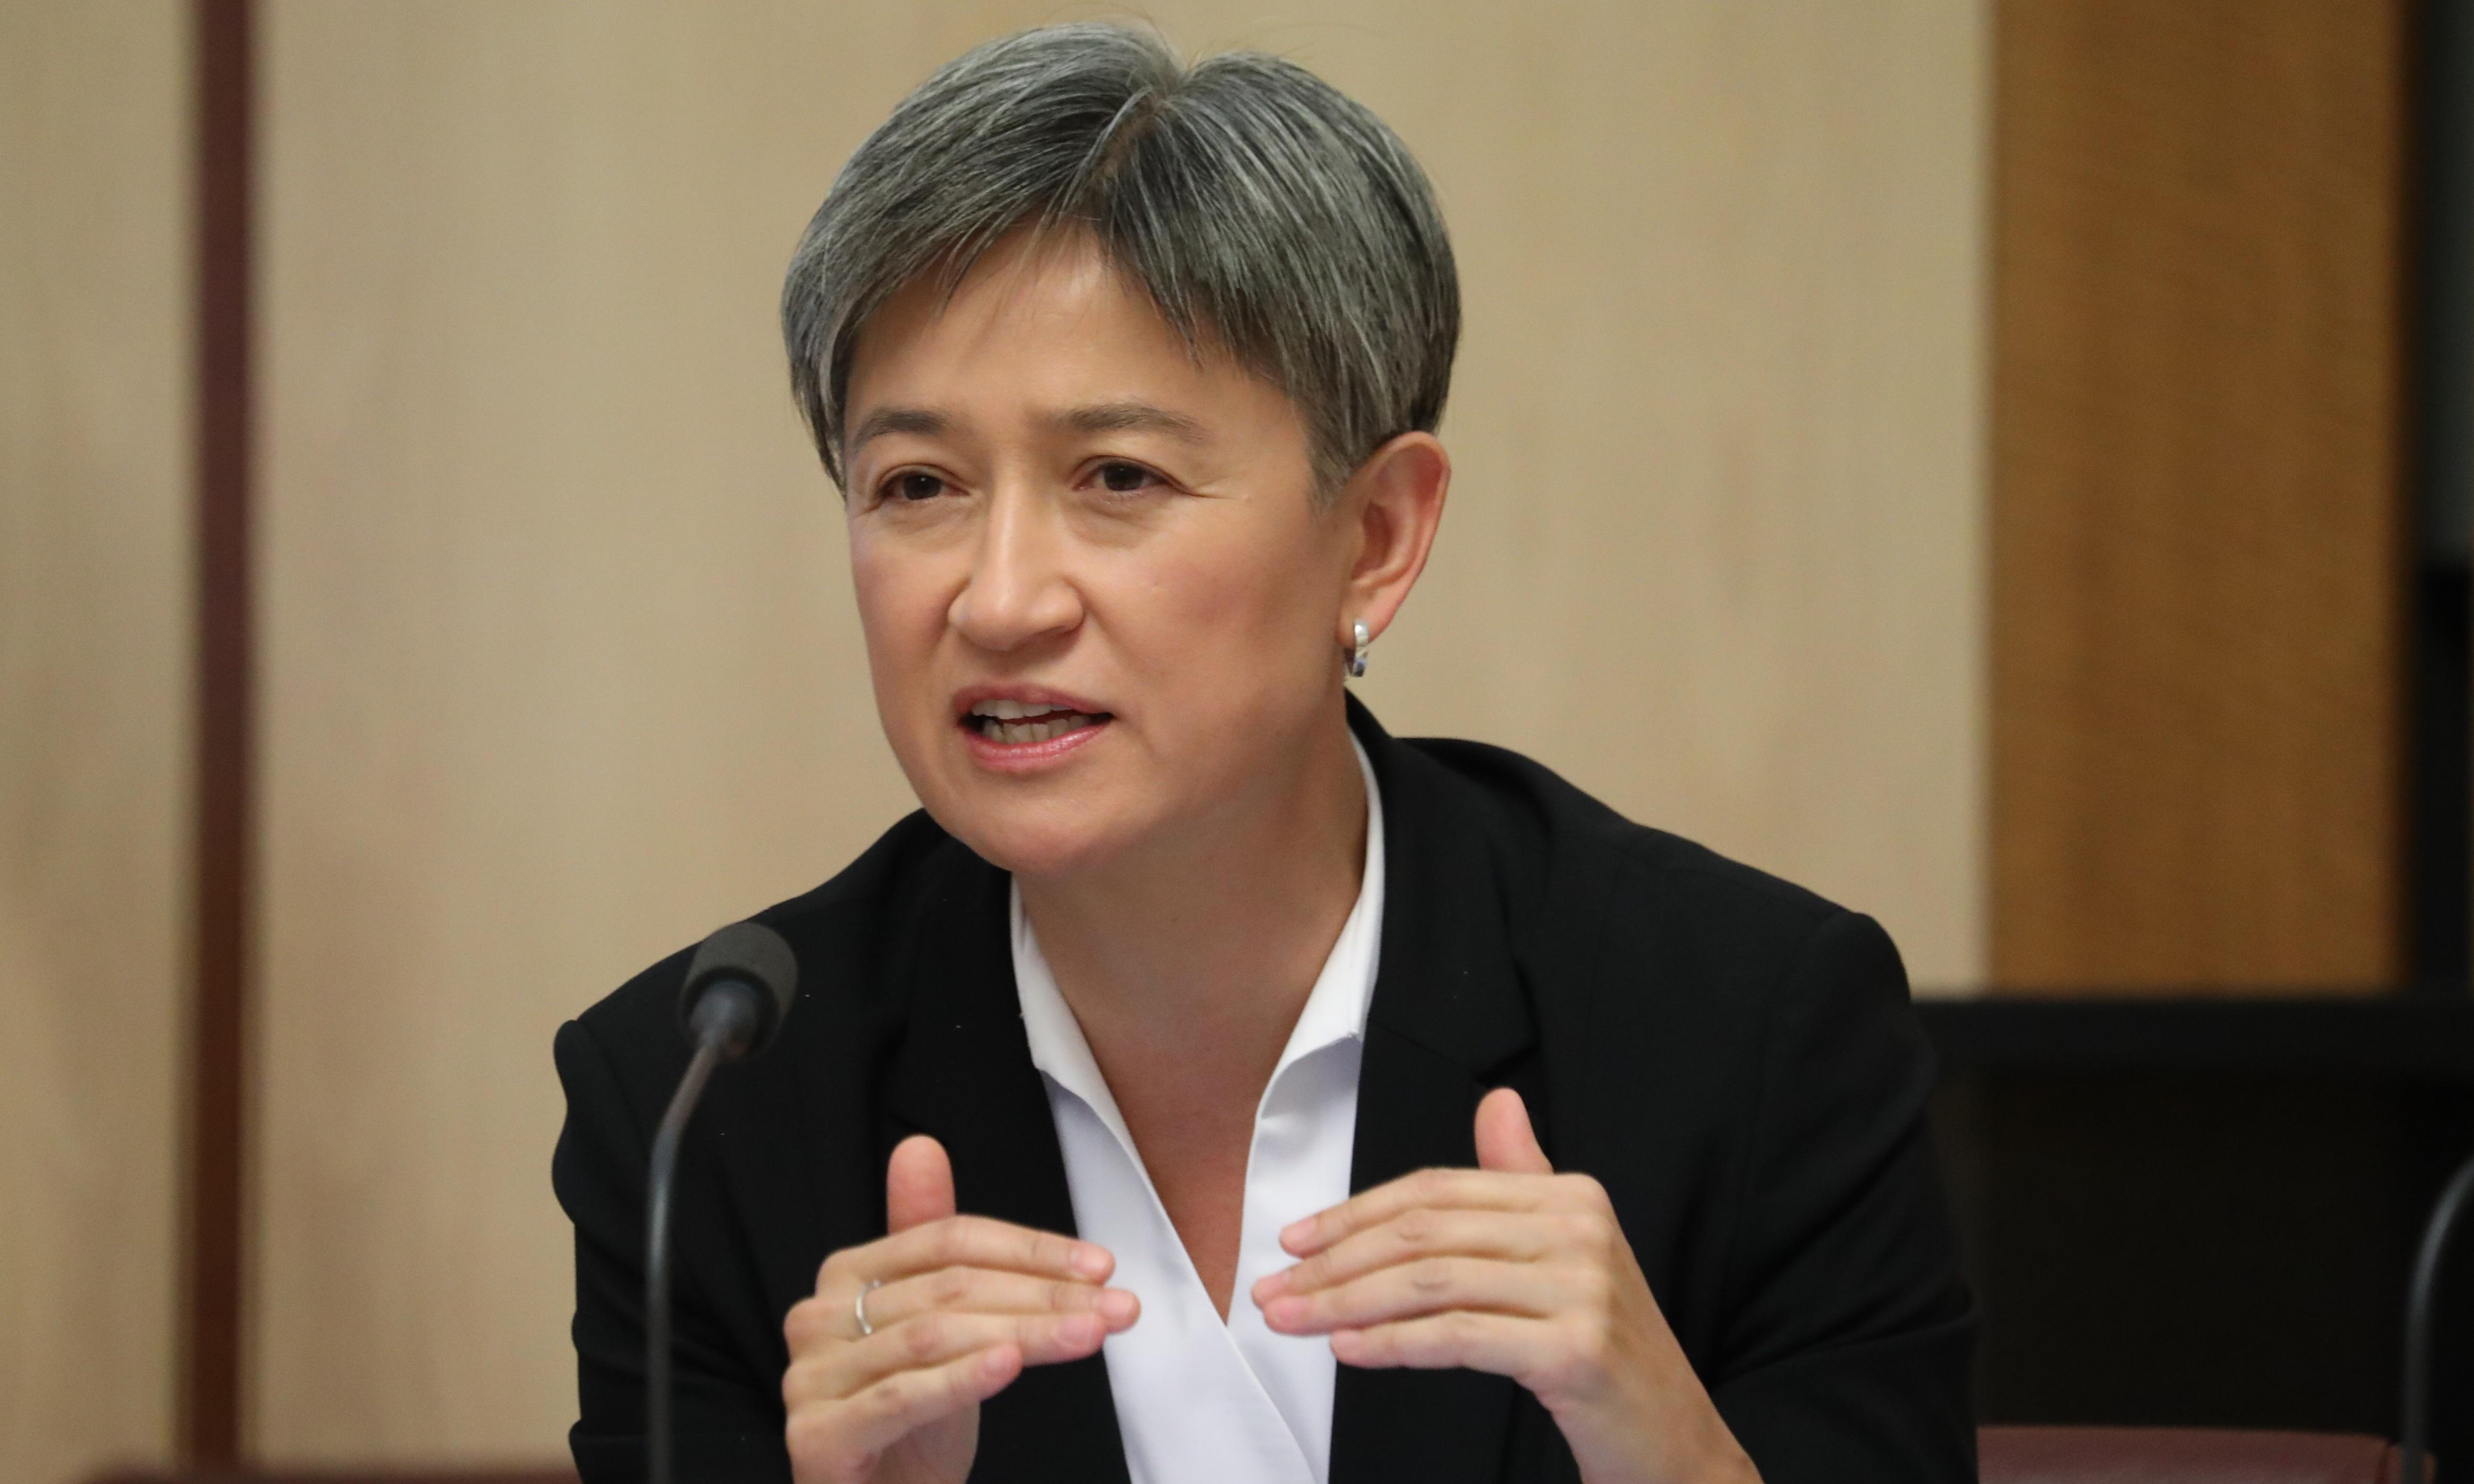 'Disturbingly lightweight': Penny Wong targets Morrison over China and 'negative globalism'